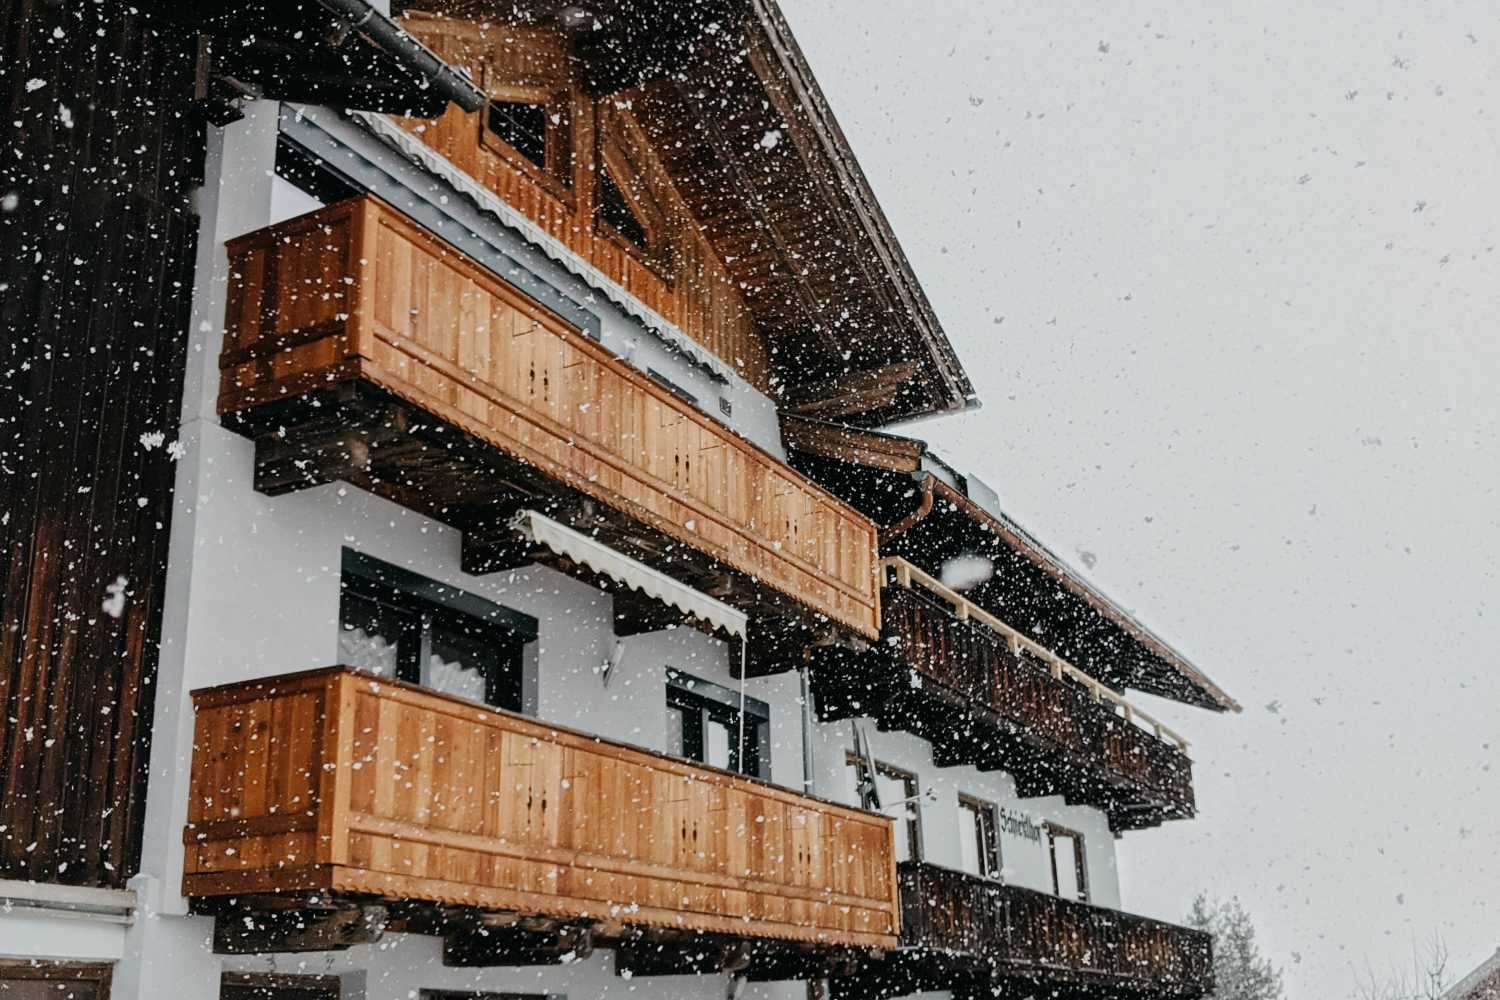 A wooden panelled Austrian home is kissed by petite snowflakes on a cosy day. Photo by Jara from Pexels